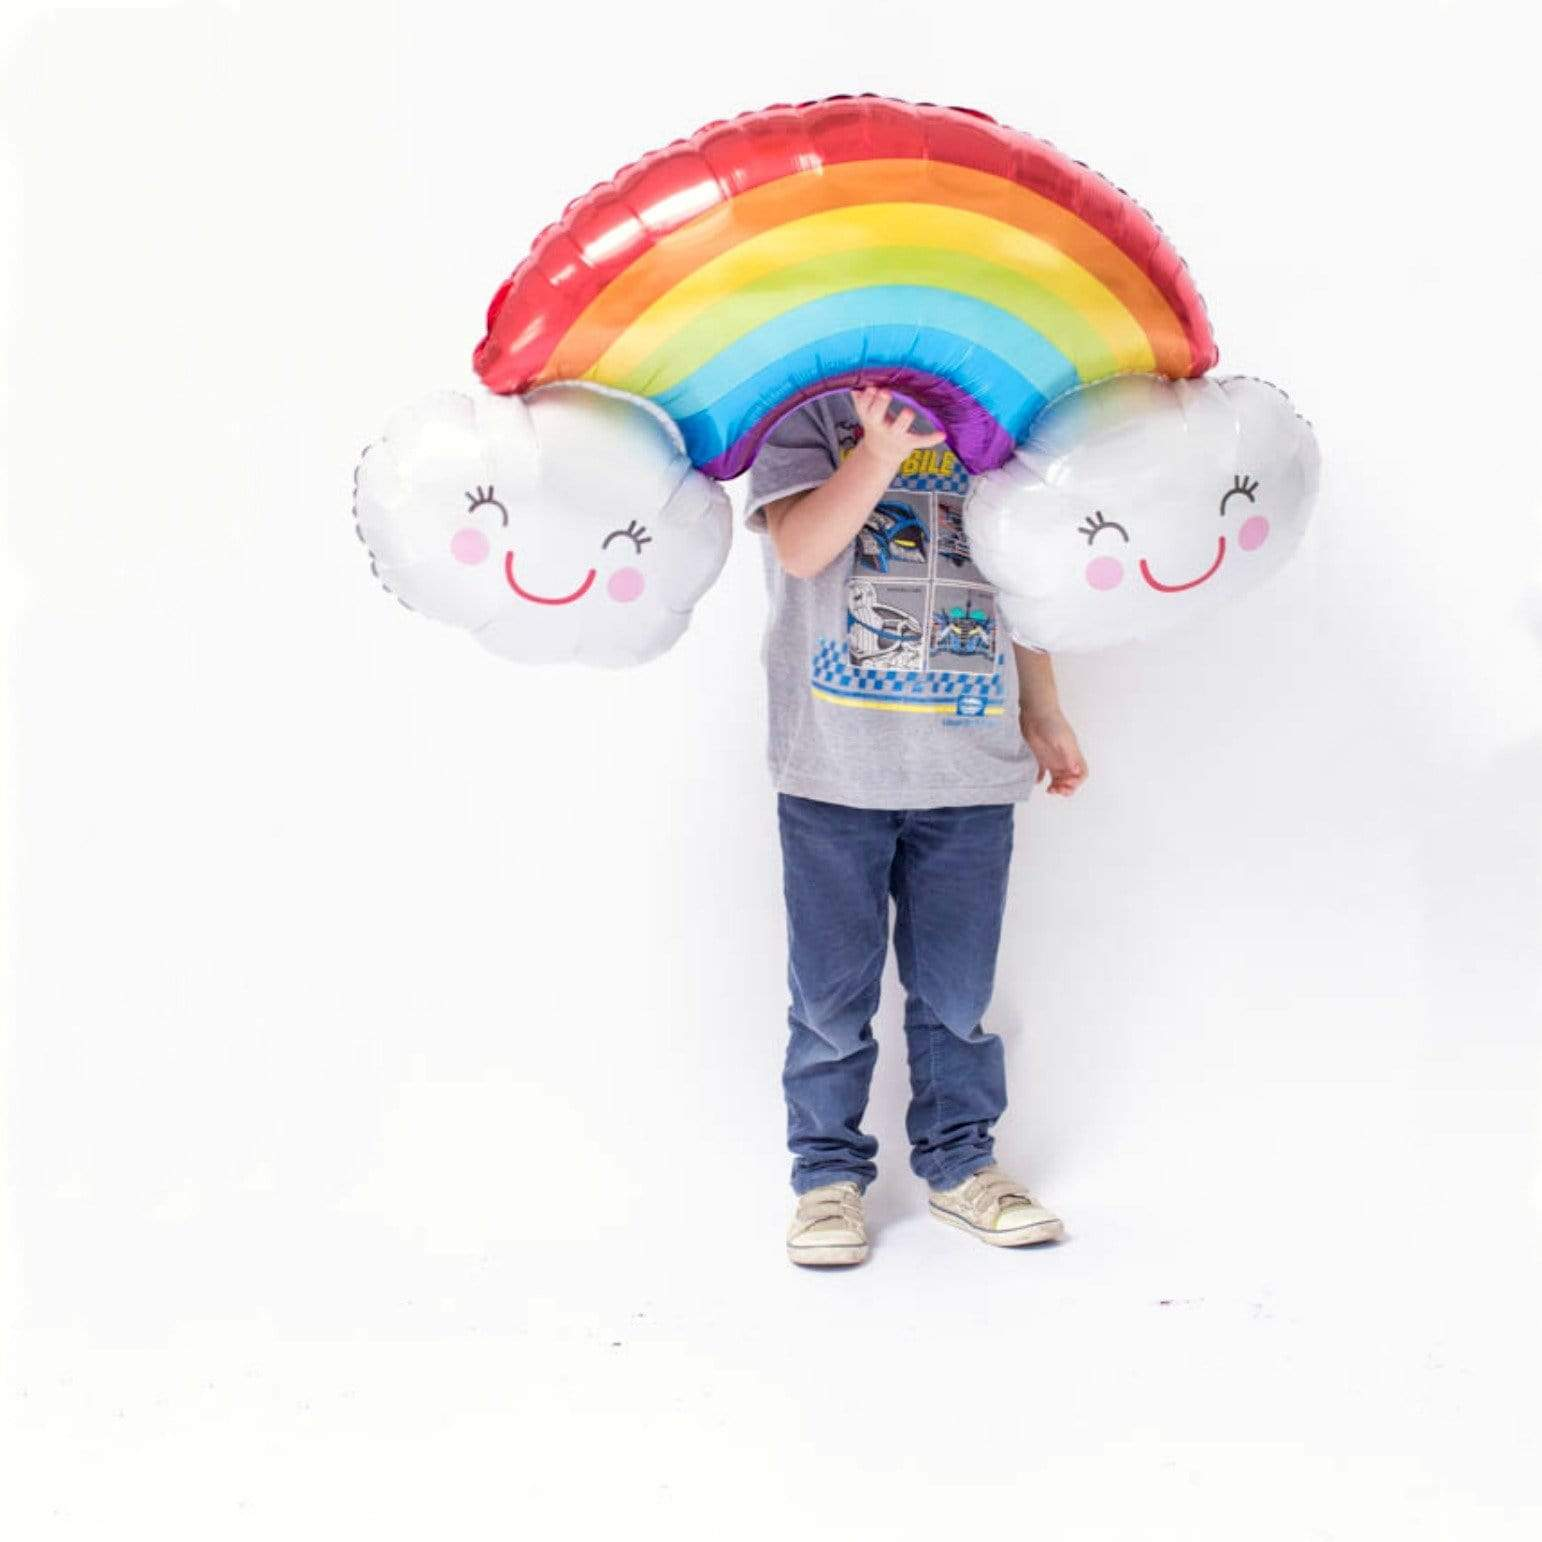 Giant Rainbow and Clouds Balloon